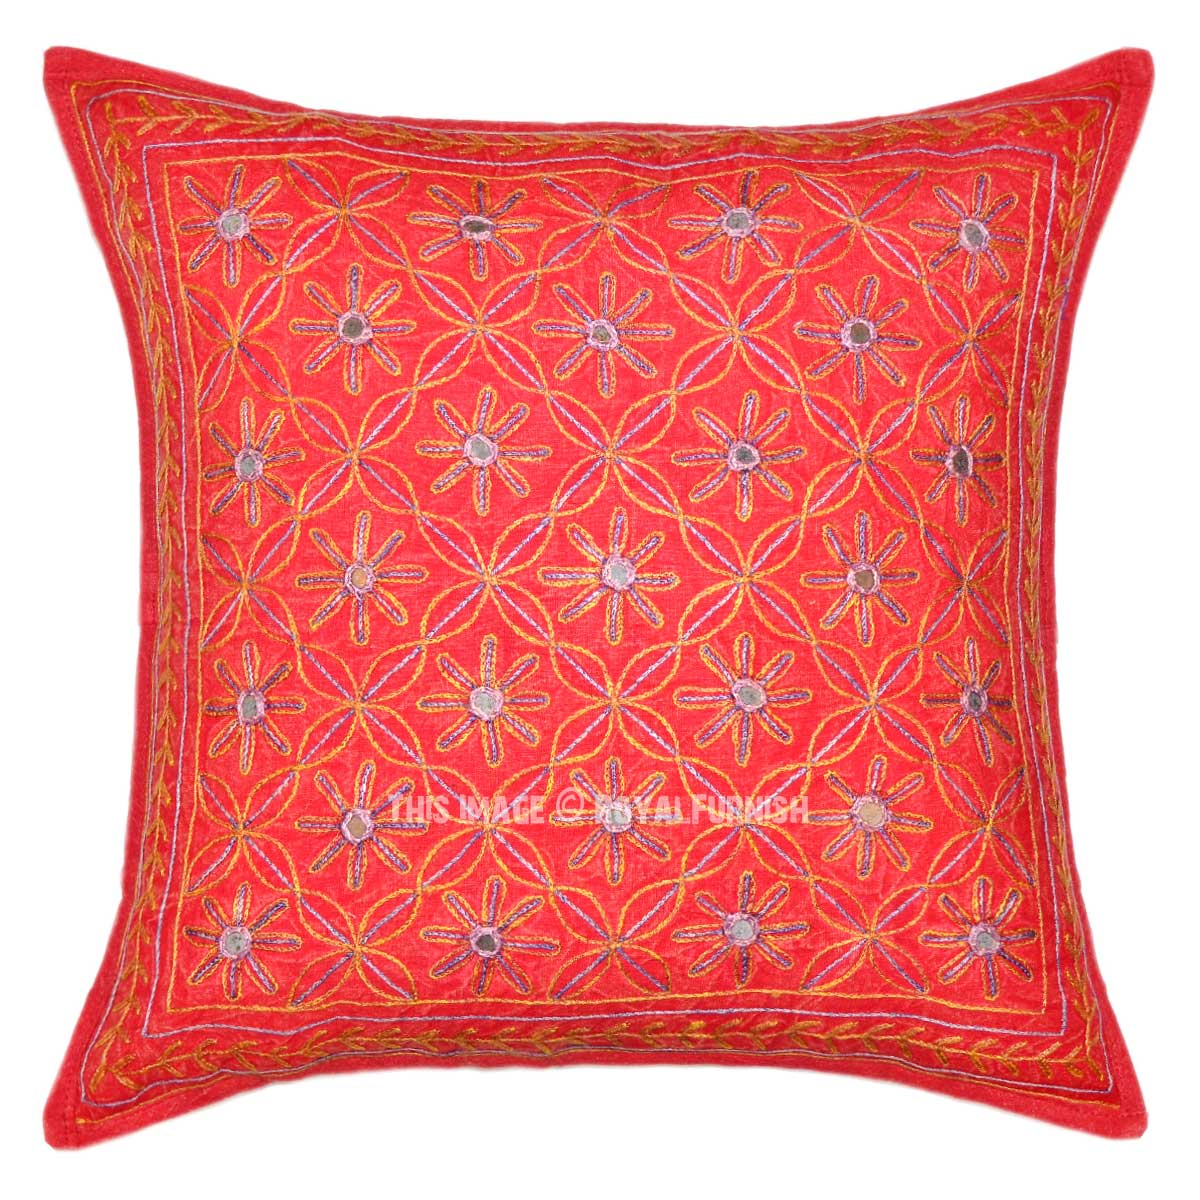 Unique Decorative Throw Pillows : Red 16X16 Decorative One-Of-A-Kind Unique Embroidered Pillow Cover - RoyalFurnish.com